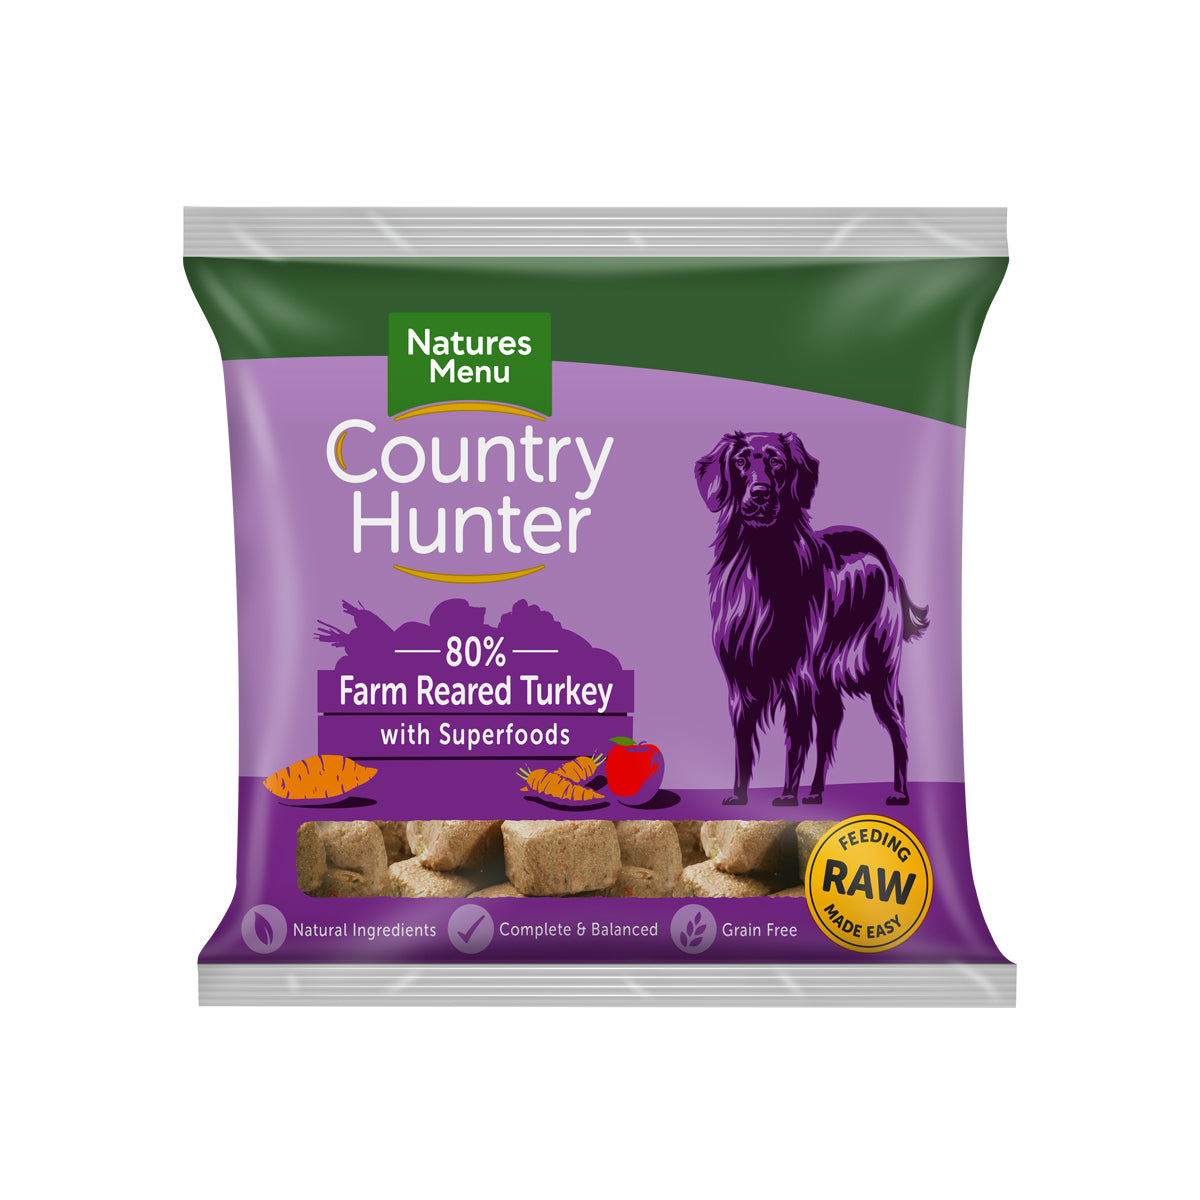 Natures Menu Country Hunter Raw Nuggets Farm Reared Turkey For Dogs 1kg